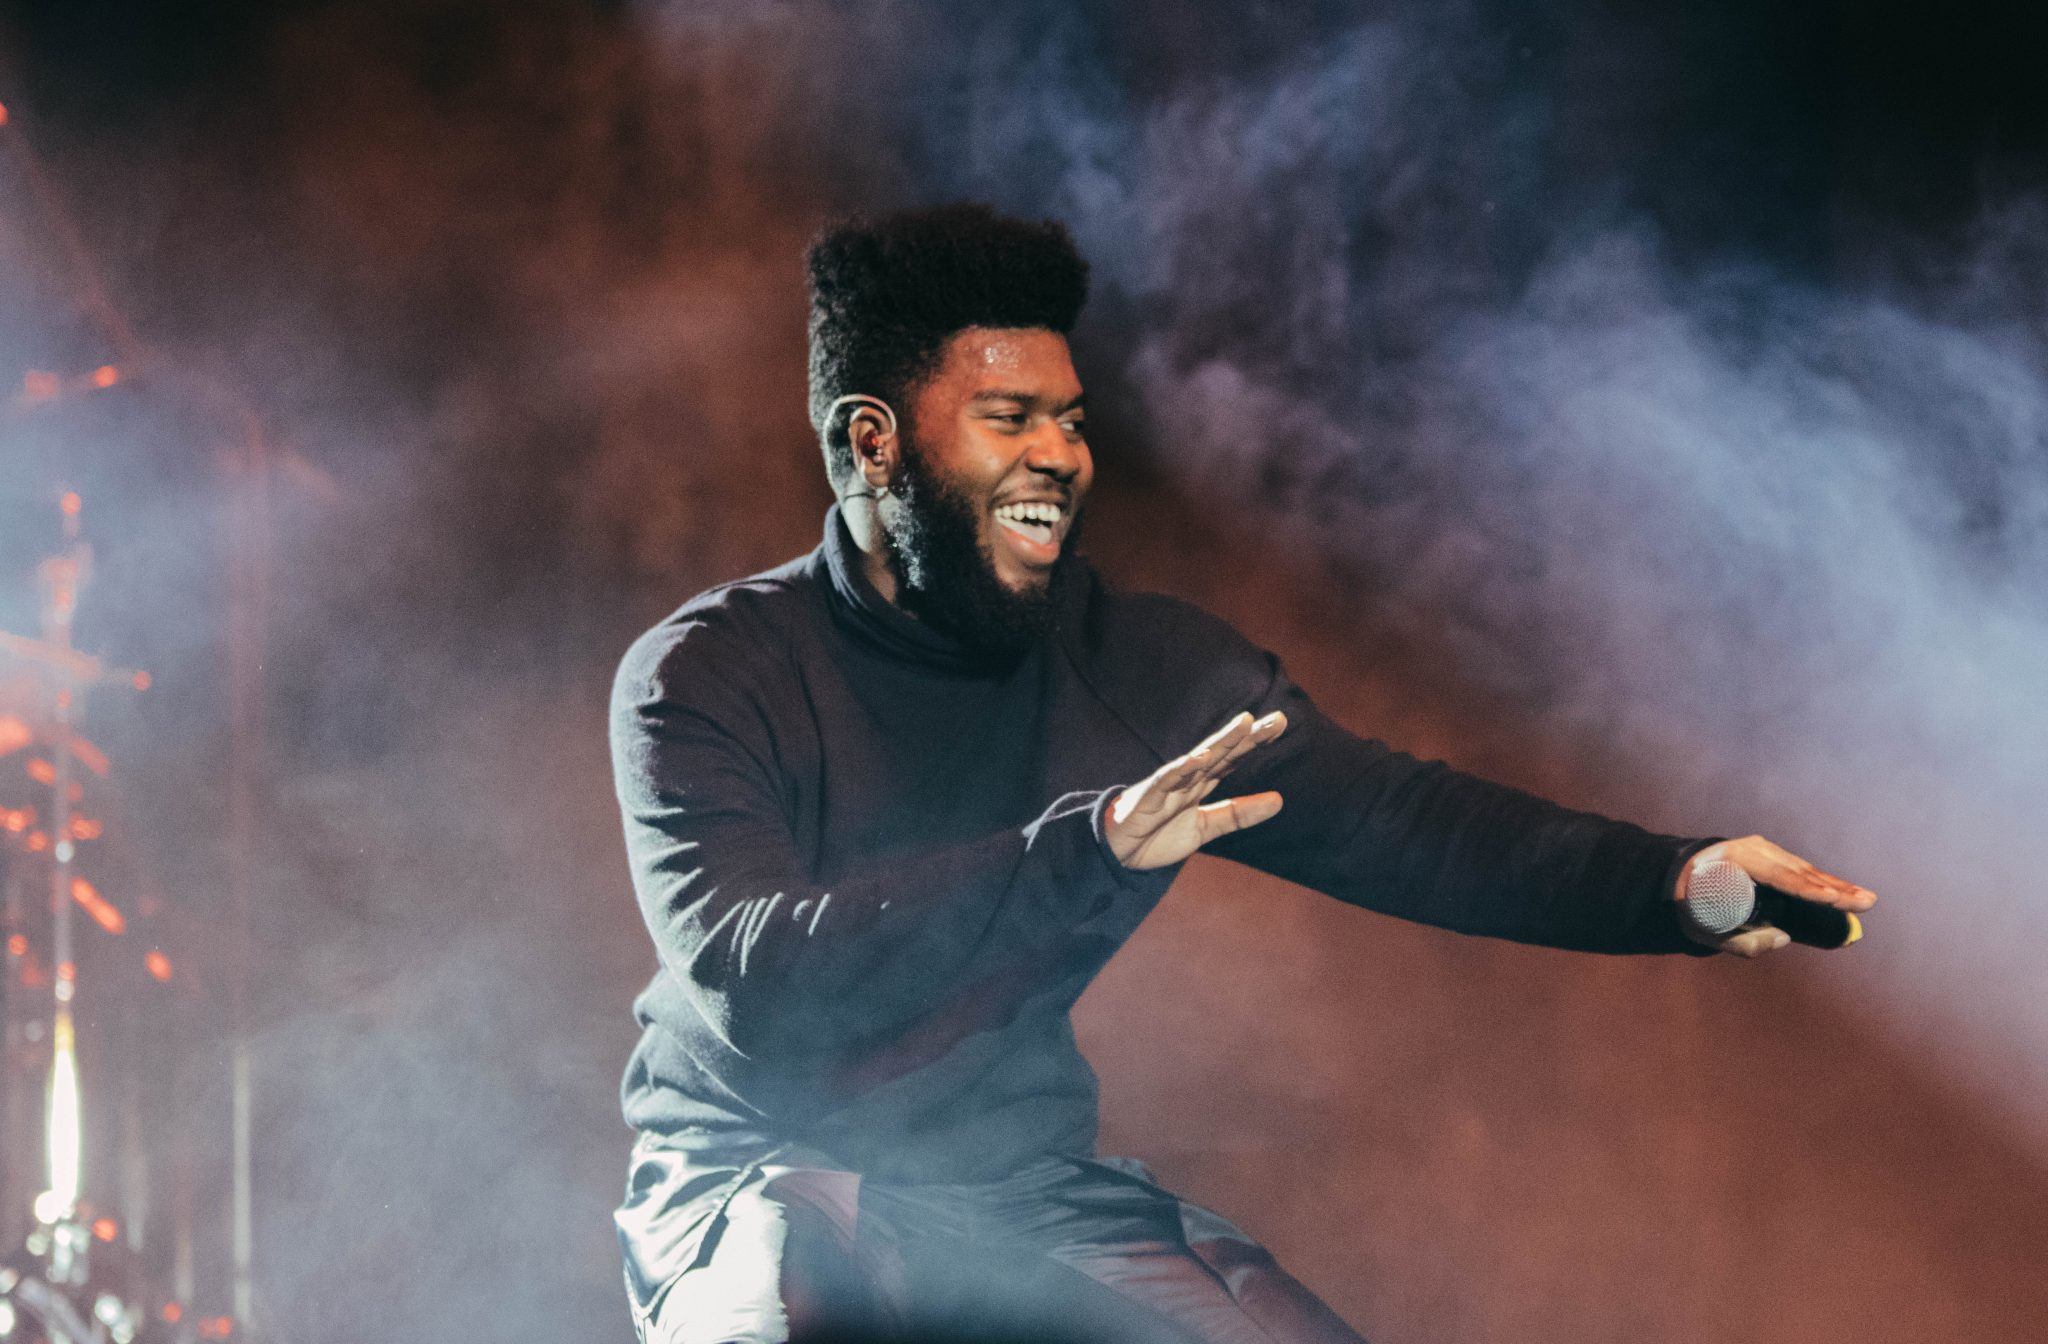 LIVE REVIEW: Khalid plays Chicago his Grammy-nominated tunes